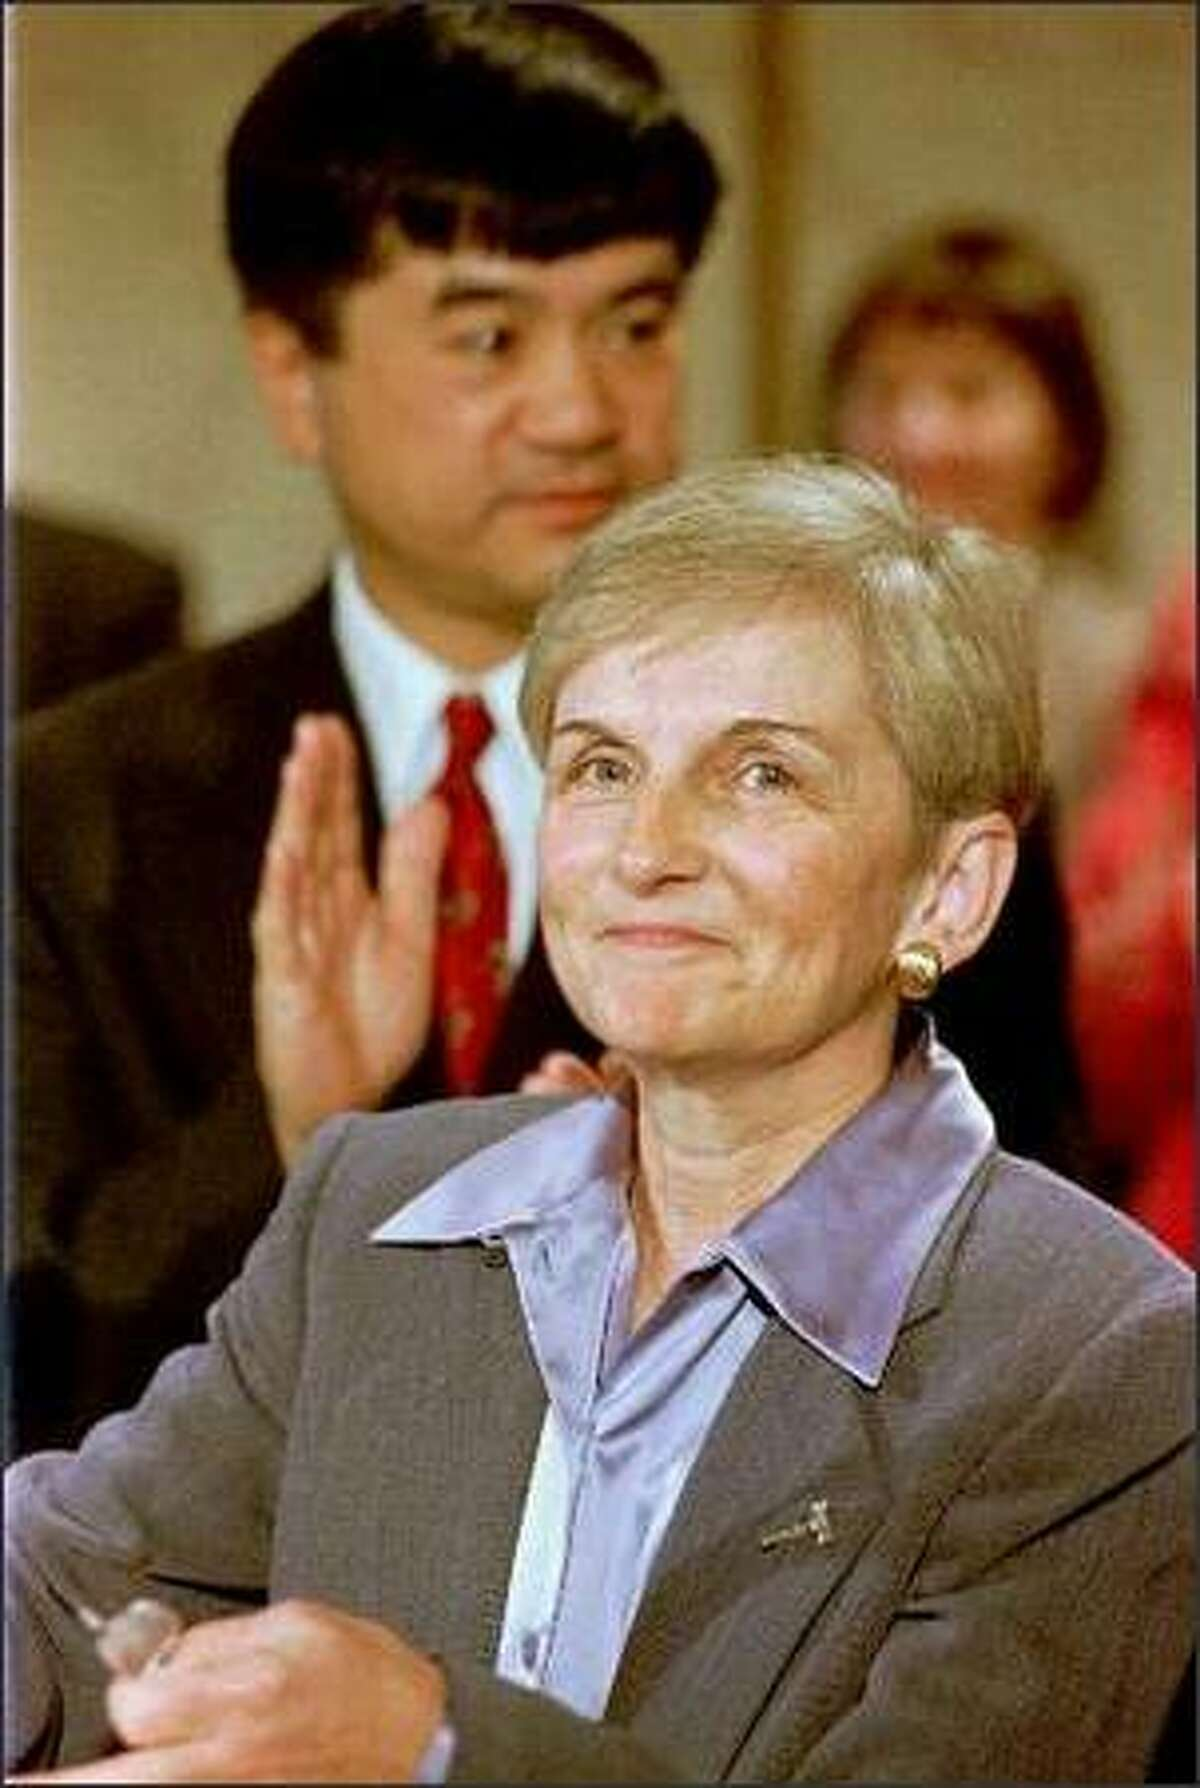 Bobbe Bridge is applauded by Gov. Gary Locke, left, after Locke announced her appointment to the Washington Supreme Court Nov. 9, 1999, in Olympia, Wash.